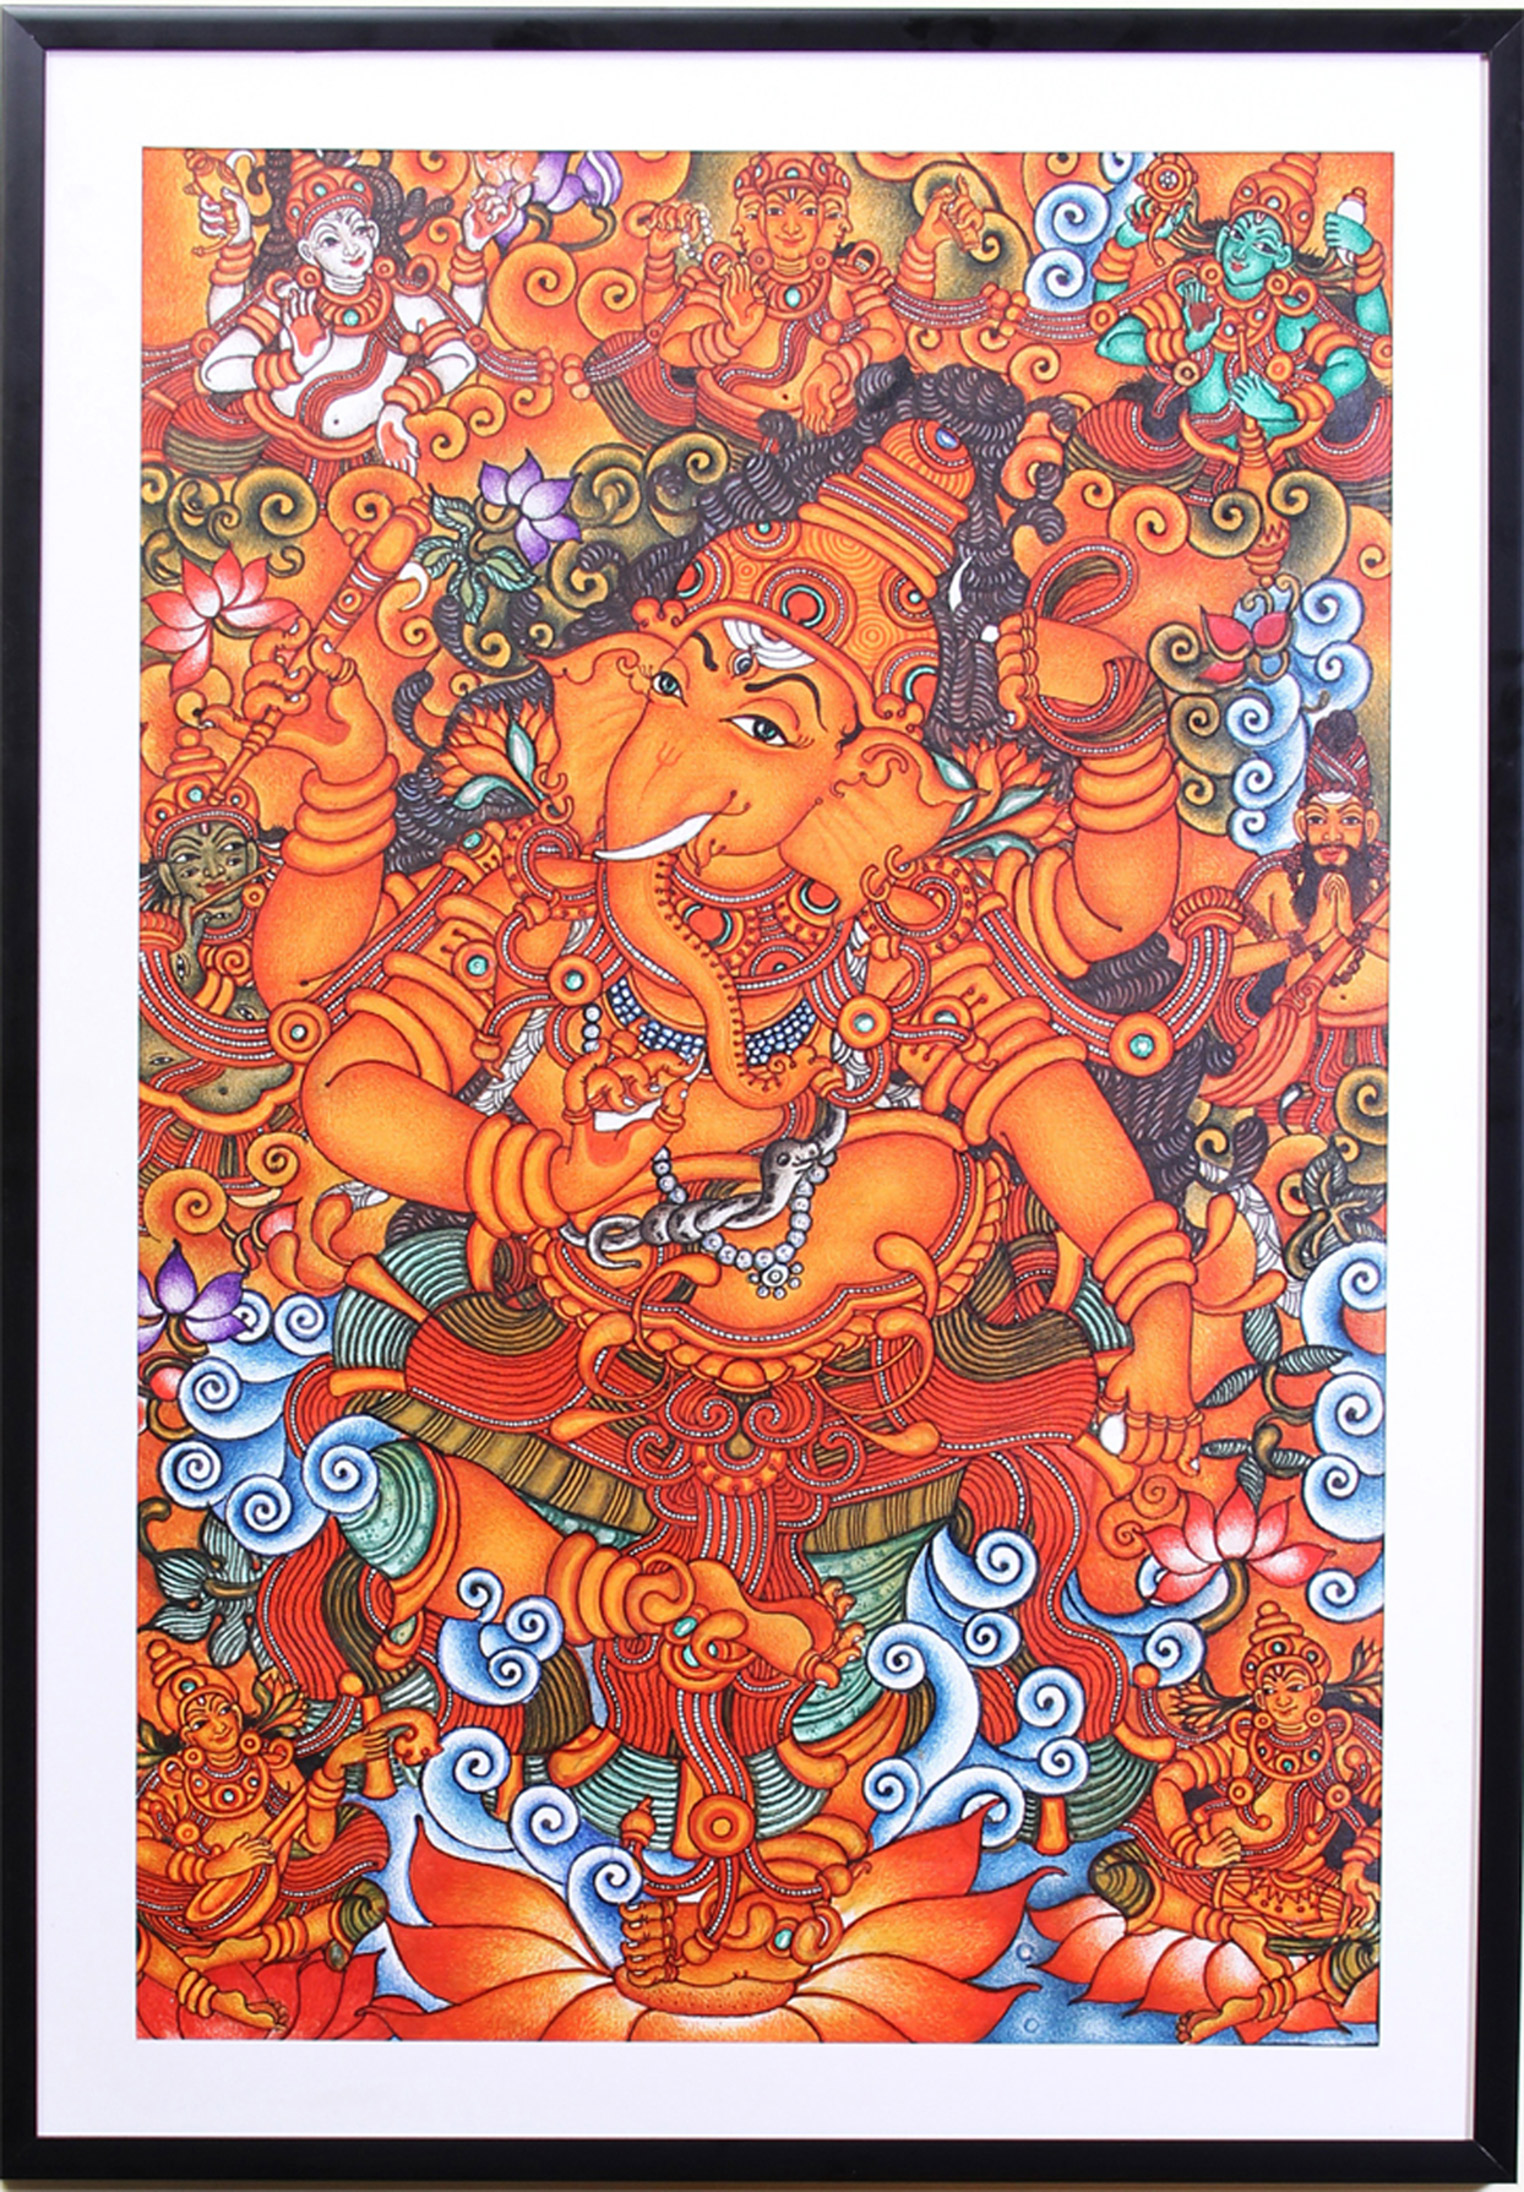 Ganesha kerala mural painting folk acrylic painting for Acrylic mural painting techniques